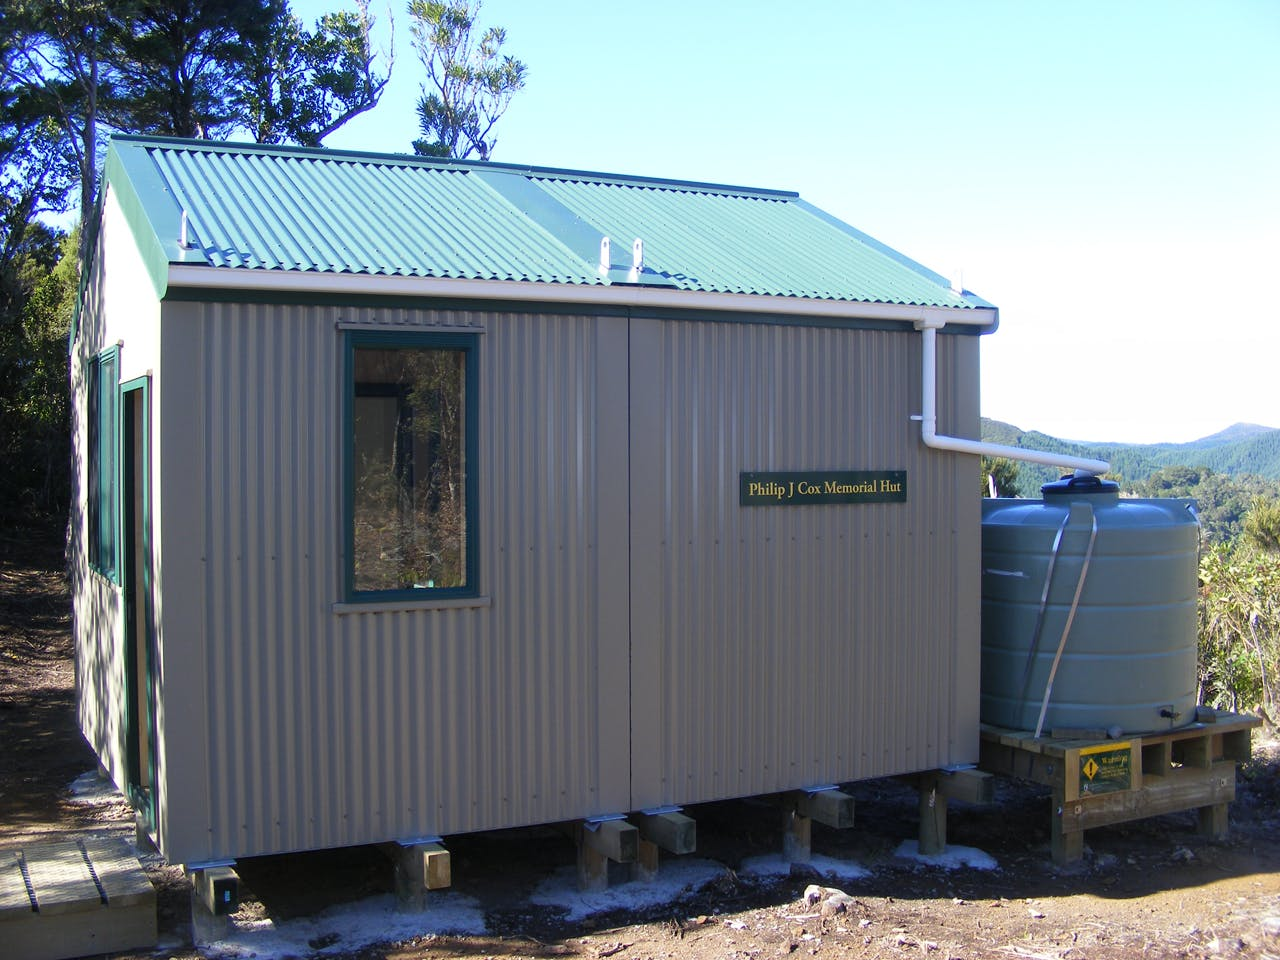 The new Silver Peaks hut is named after a local outdoorsman who died in 2009